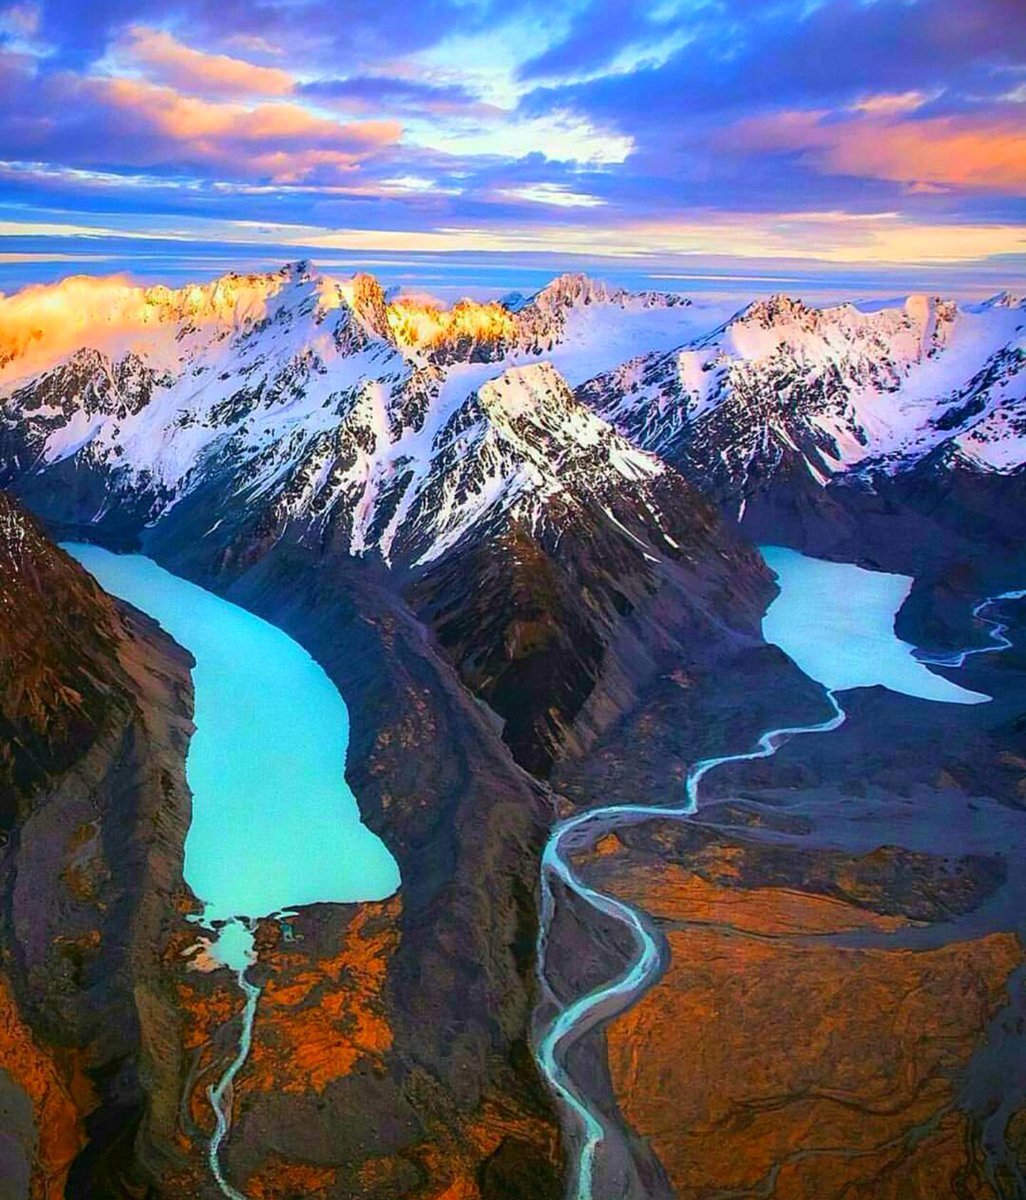 #Images of an stunning #Planet, our #Earth<br>http://pic.twitter.com/BnVgC2zwRF